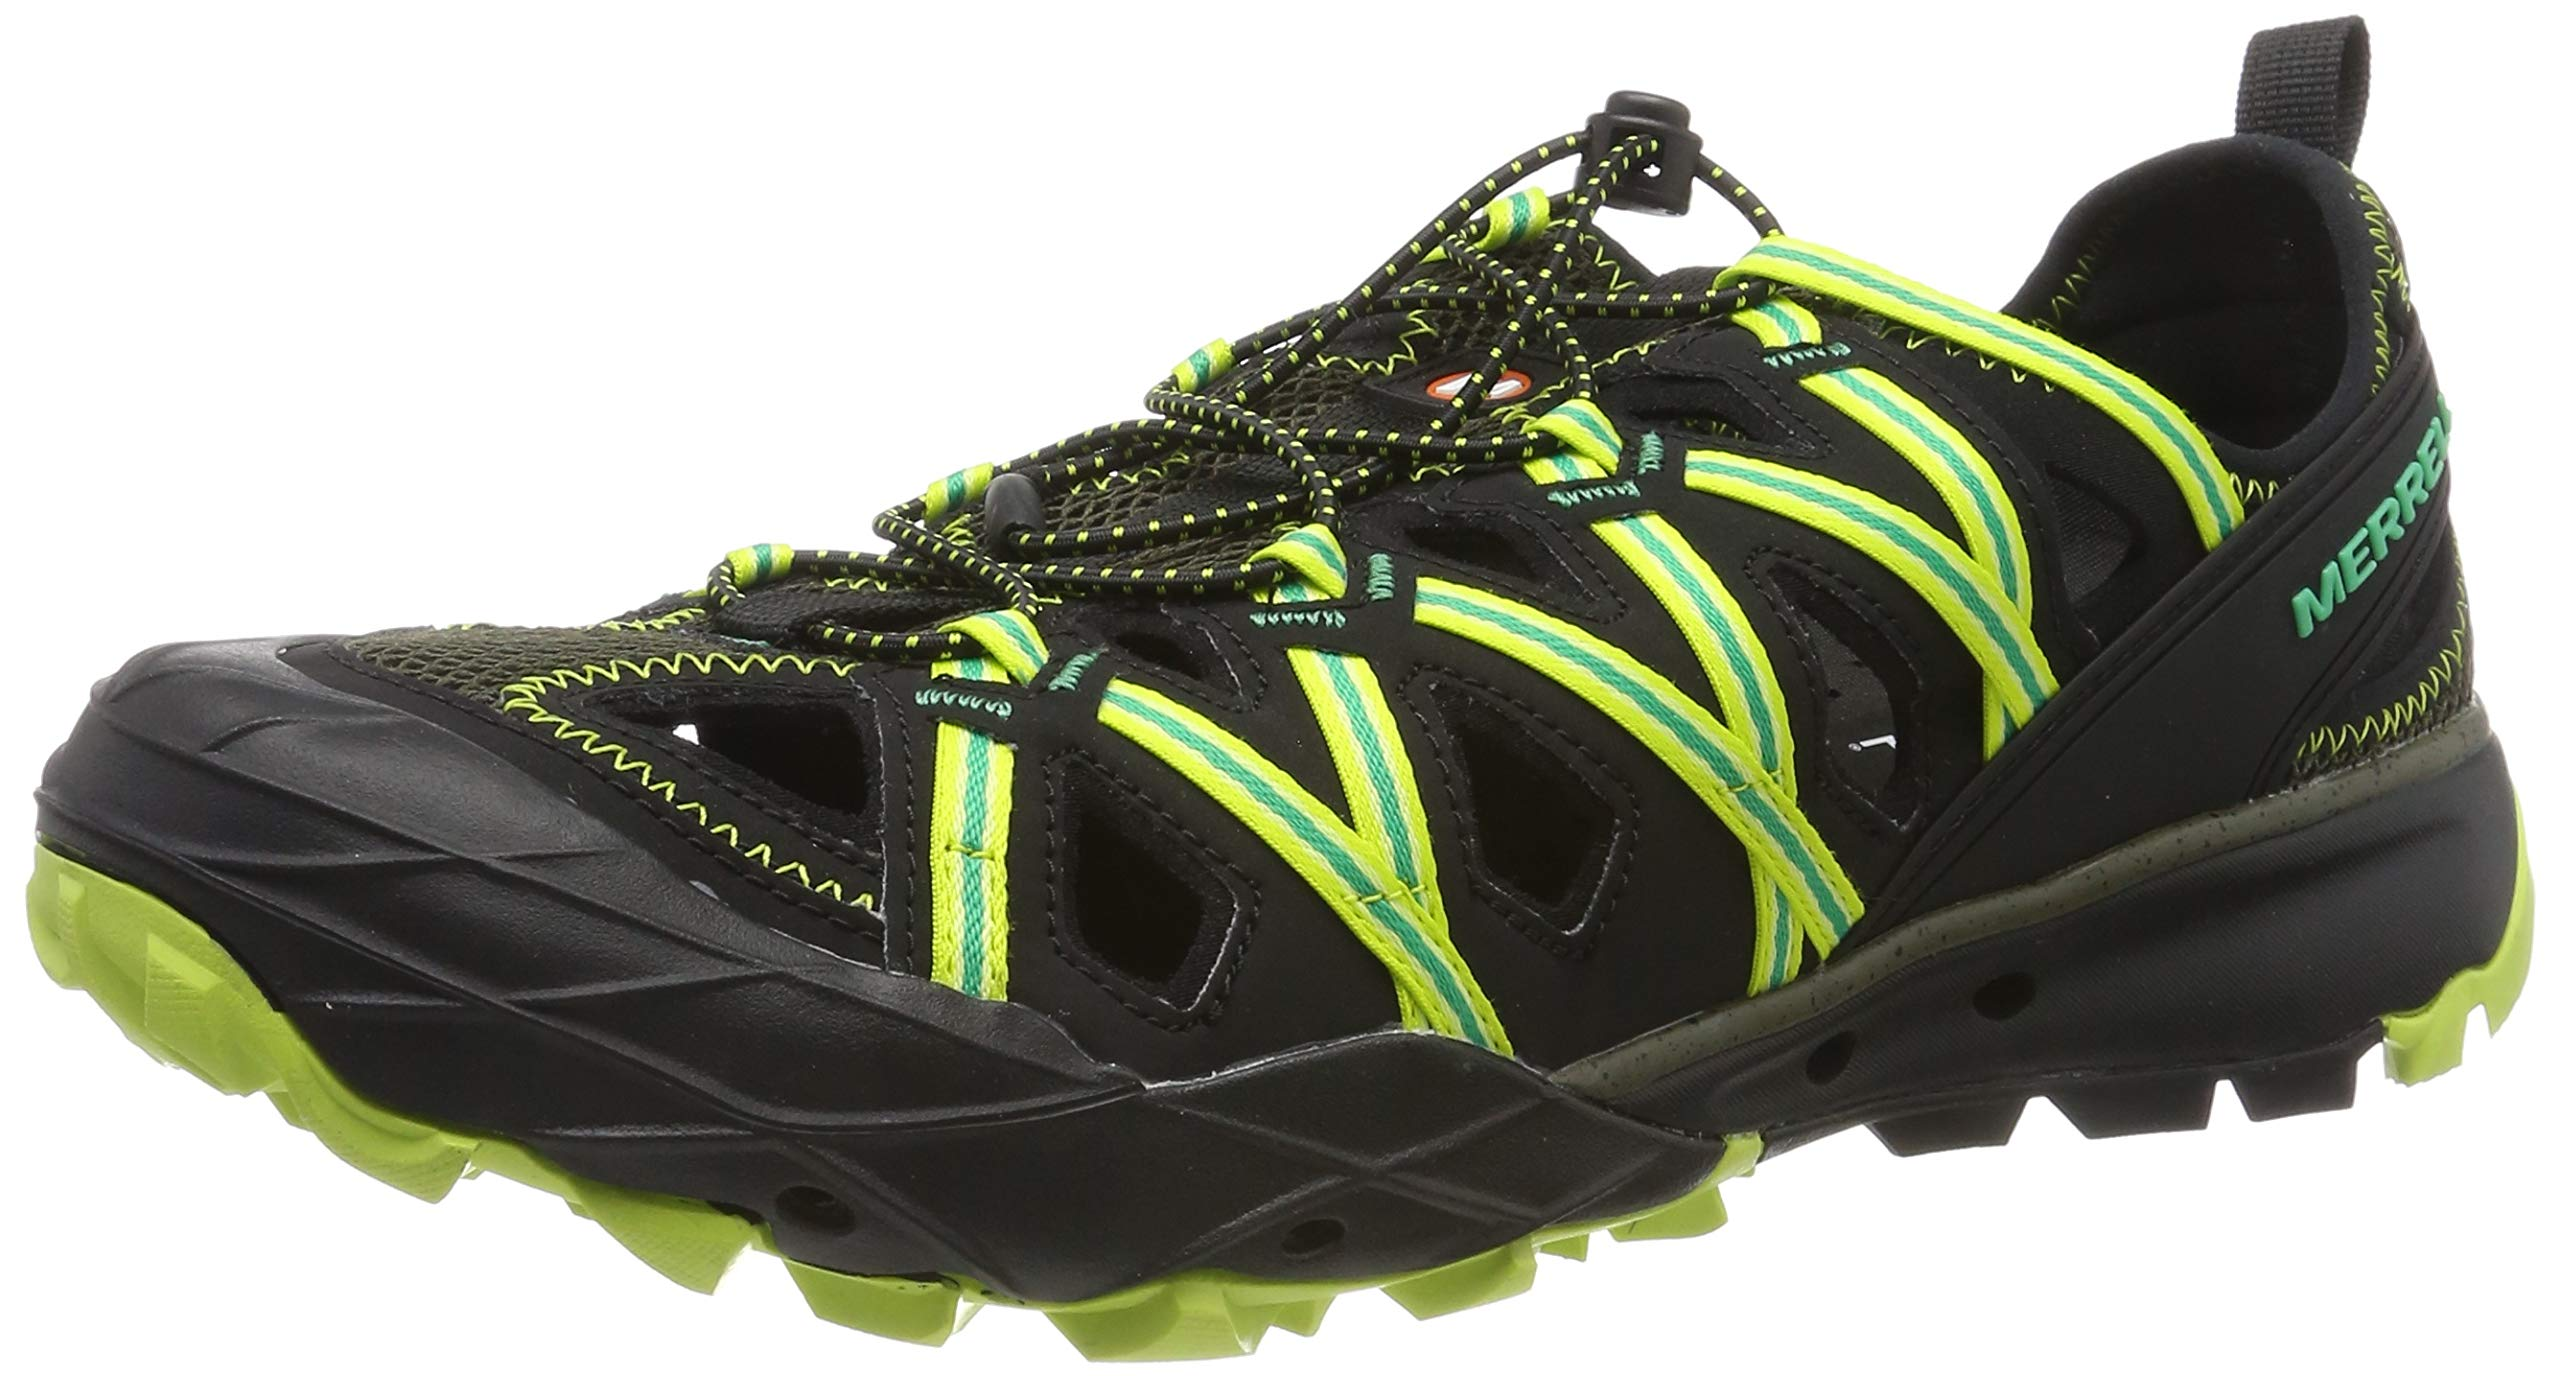 Merrell Men's Choprock Water Shoes Green Dusty Olive, 7.5 (41.5 EU)